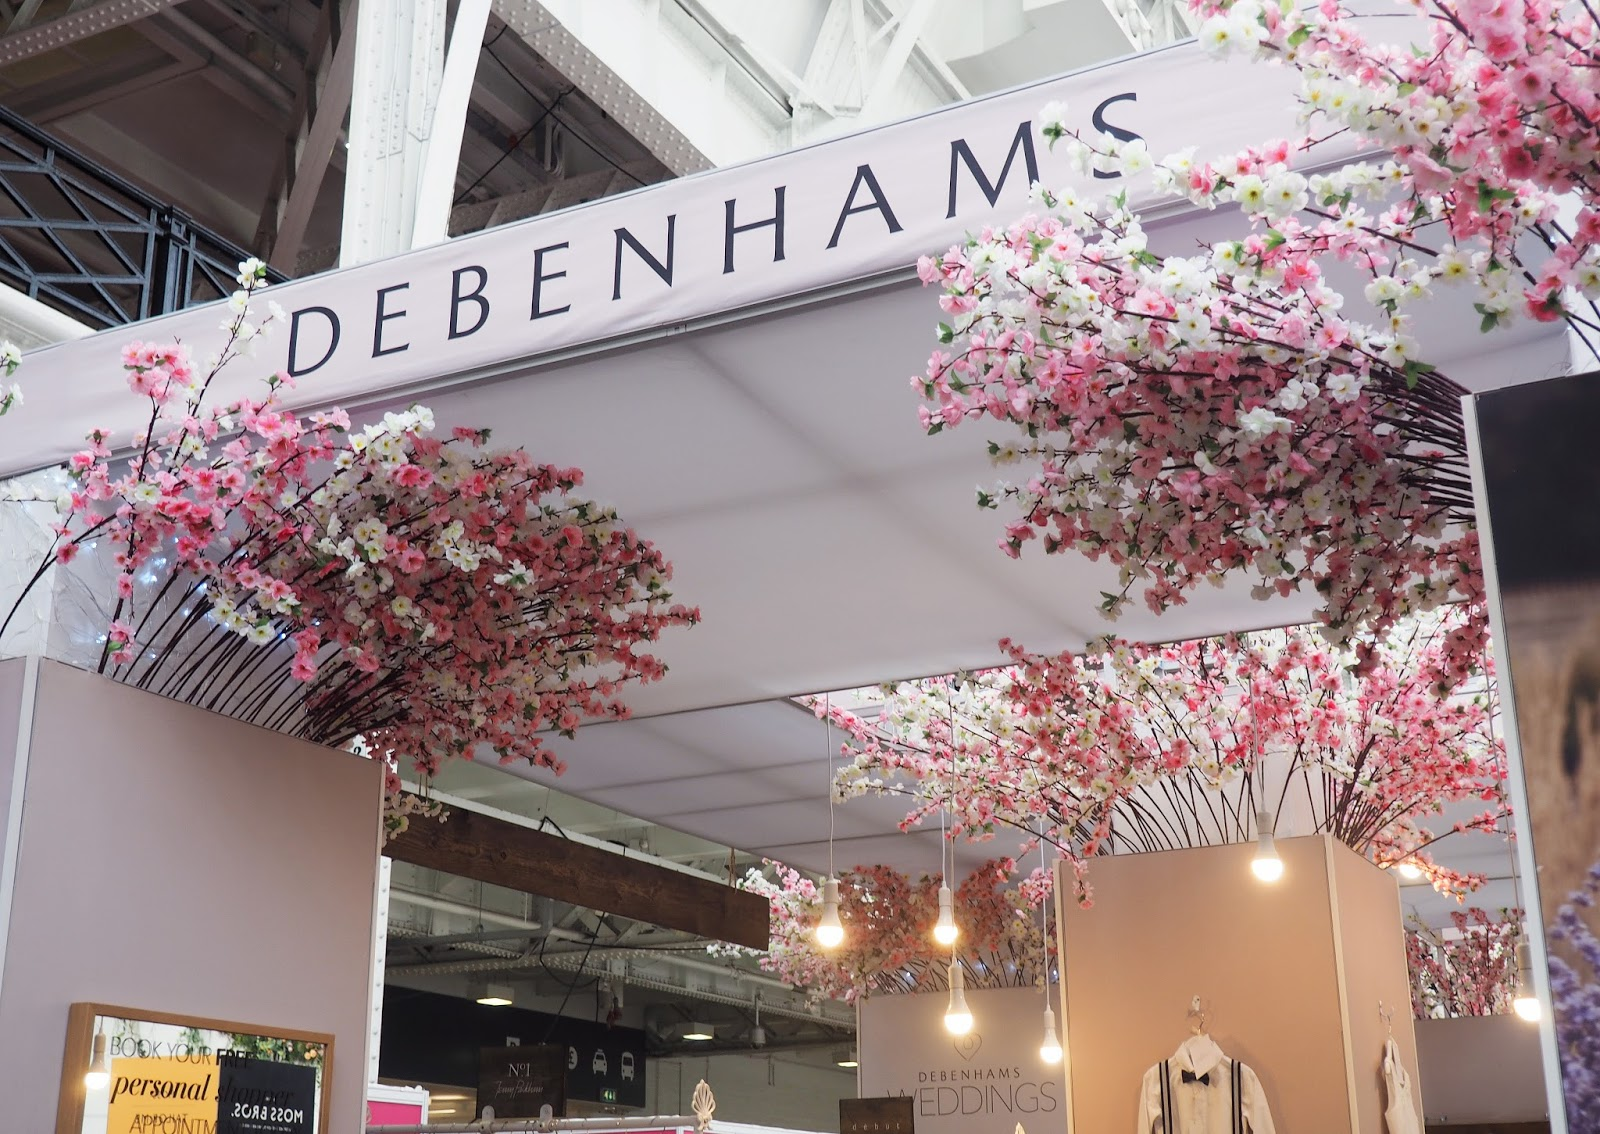 Its Not Everyday You Get VIP Tickets For An Event So When Debenhams Contacted Me Asking Whether A Guest And I Wanted To Attend The National Wedding Show